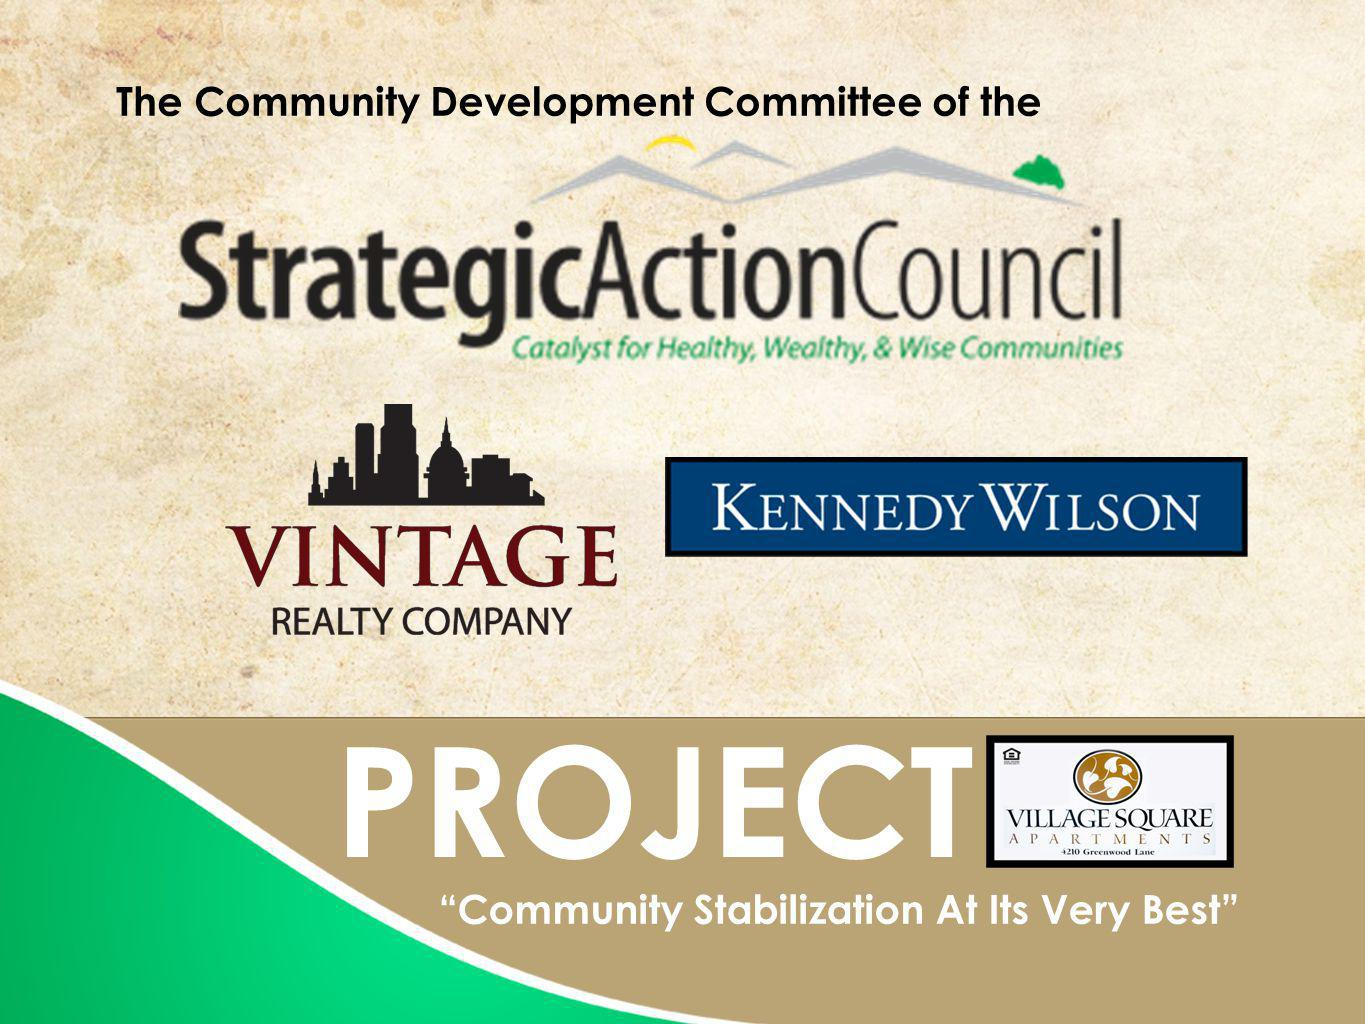 PROJECT Community Stabilization At Its Very Best The Community Development Committee of the